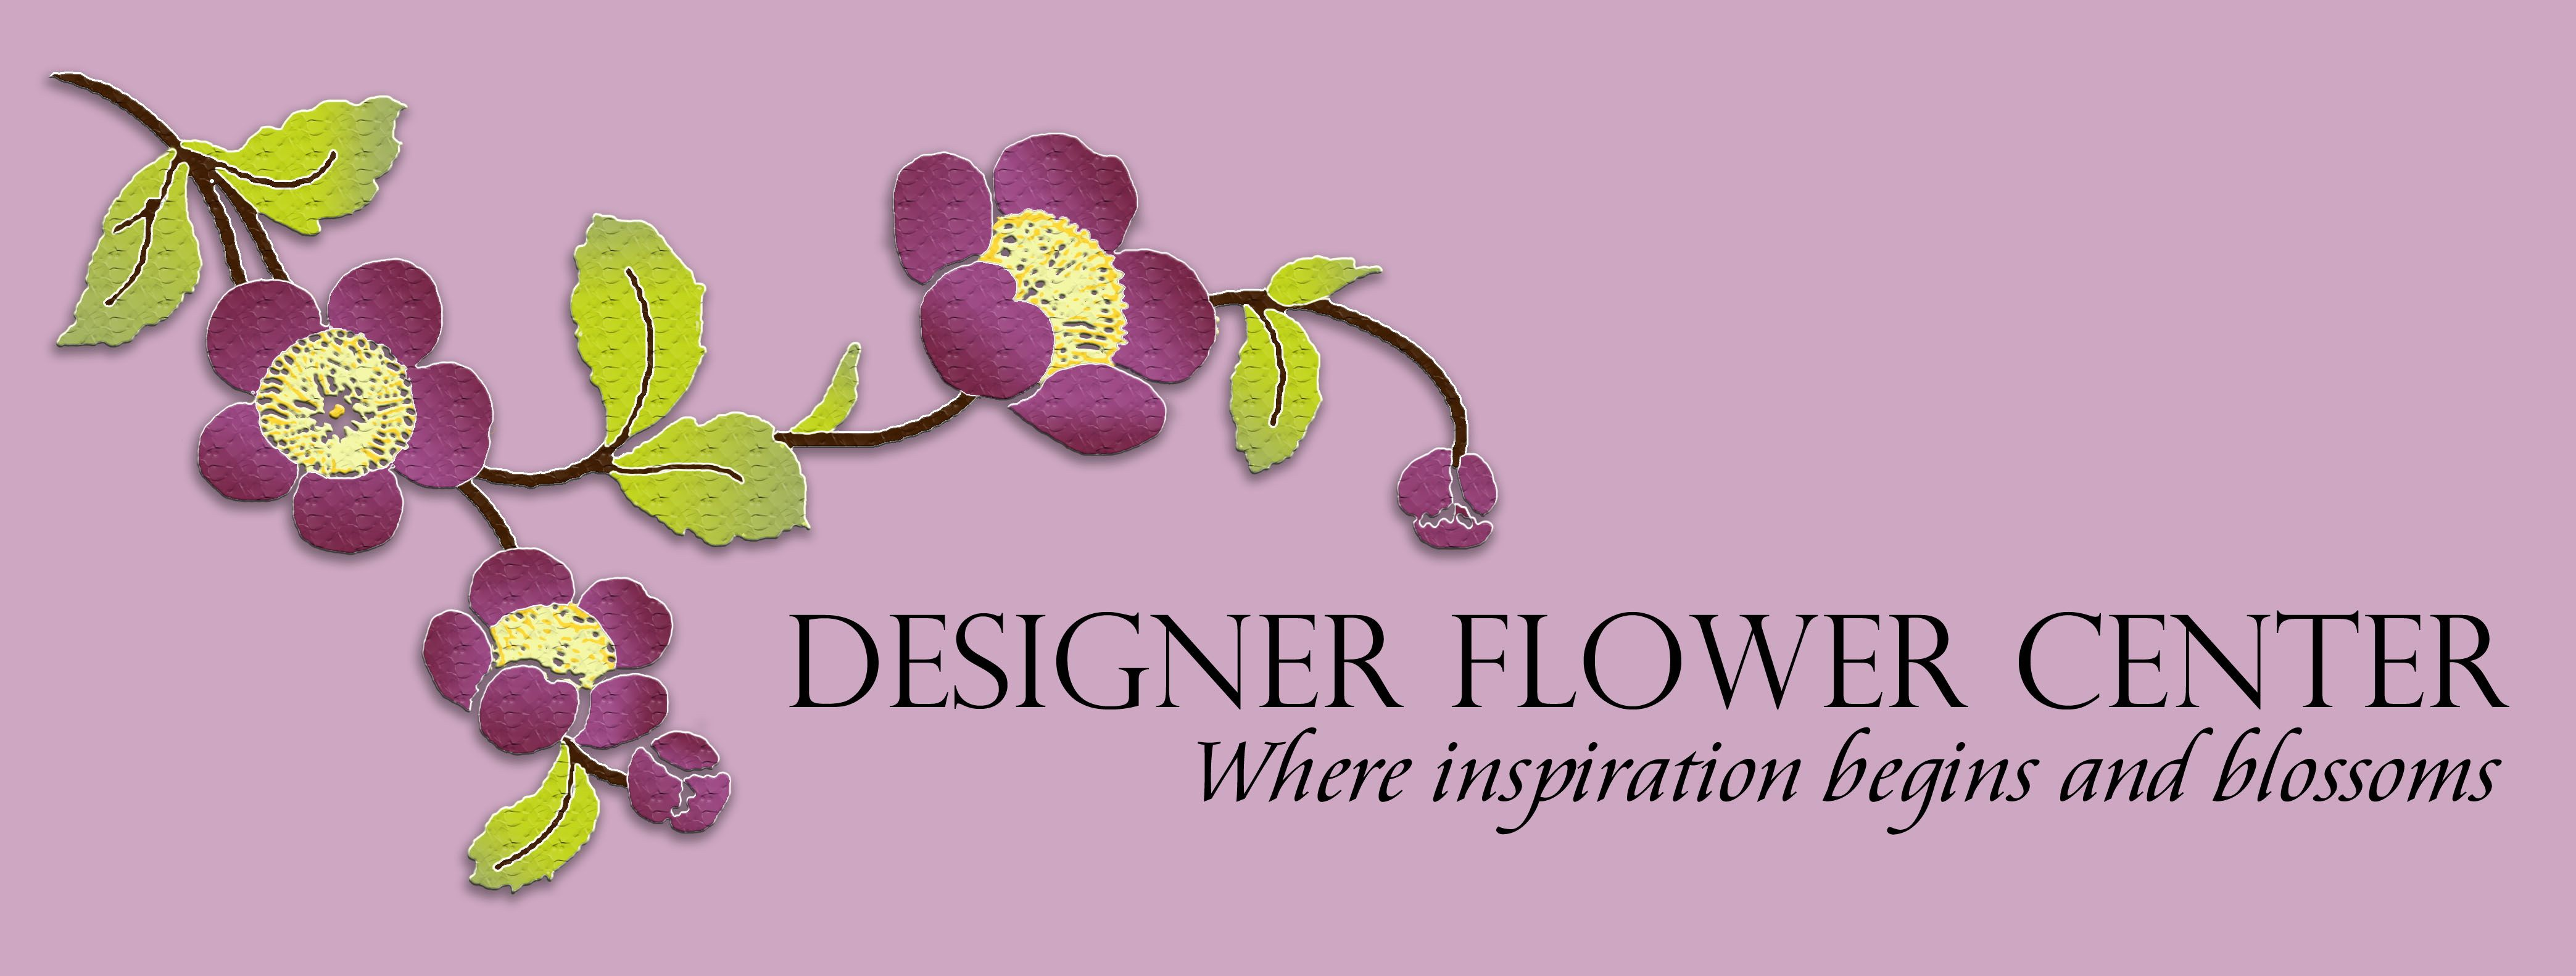 Check out our brand new blog! Designer Flower Center | Where inspiration begins and blossoms…